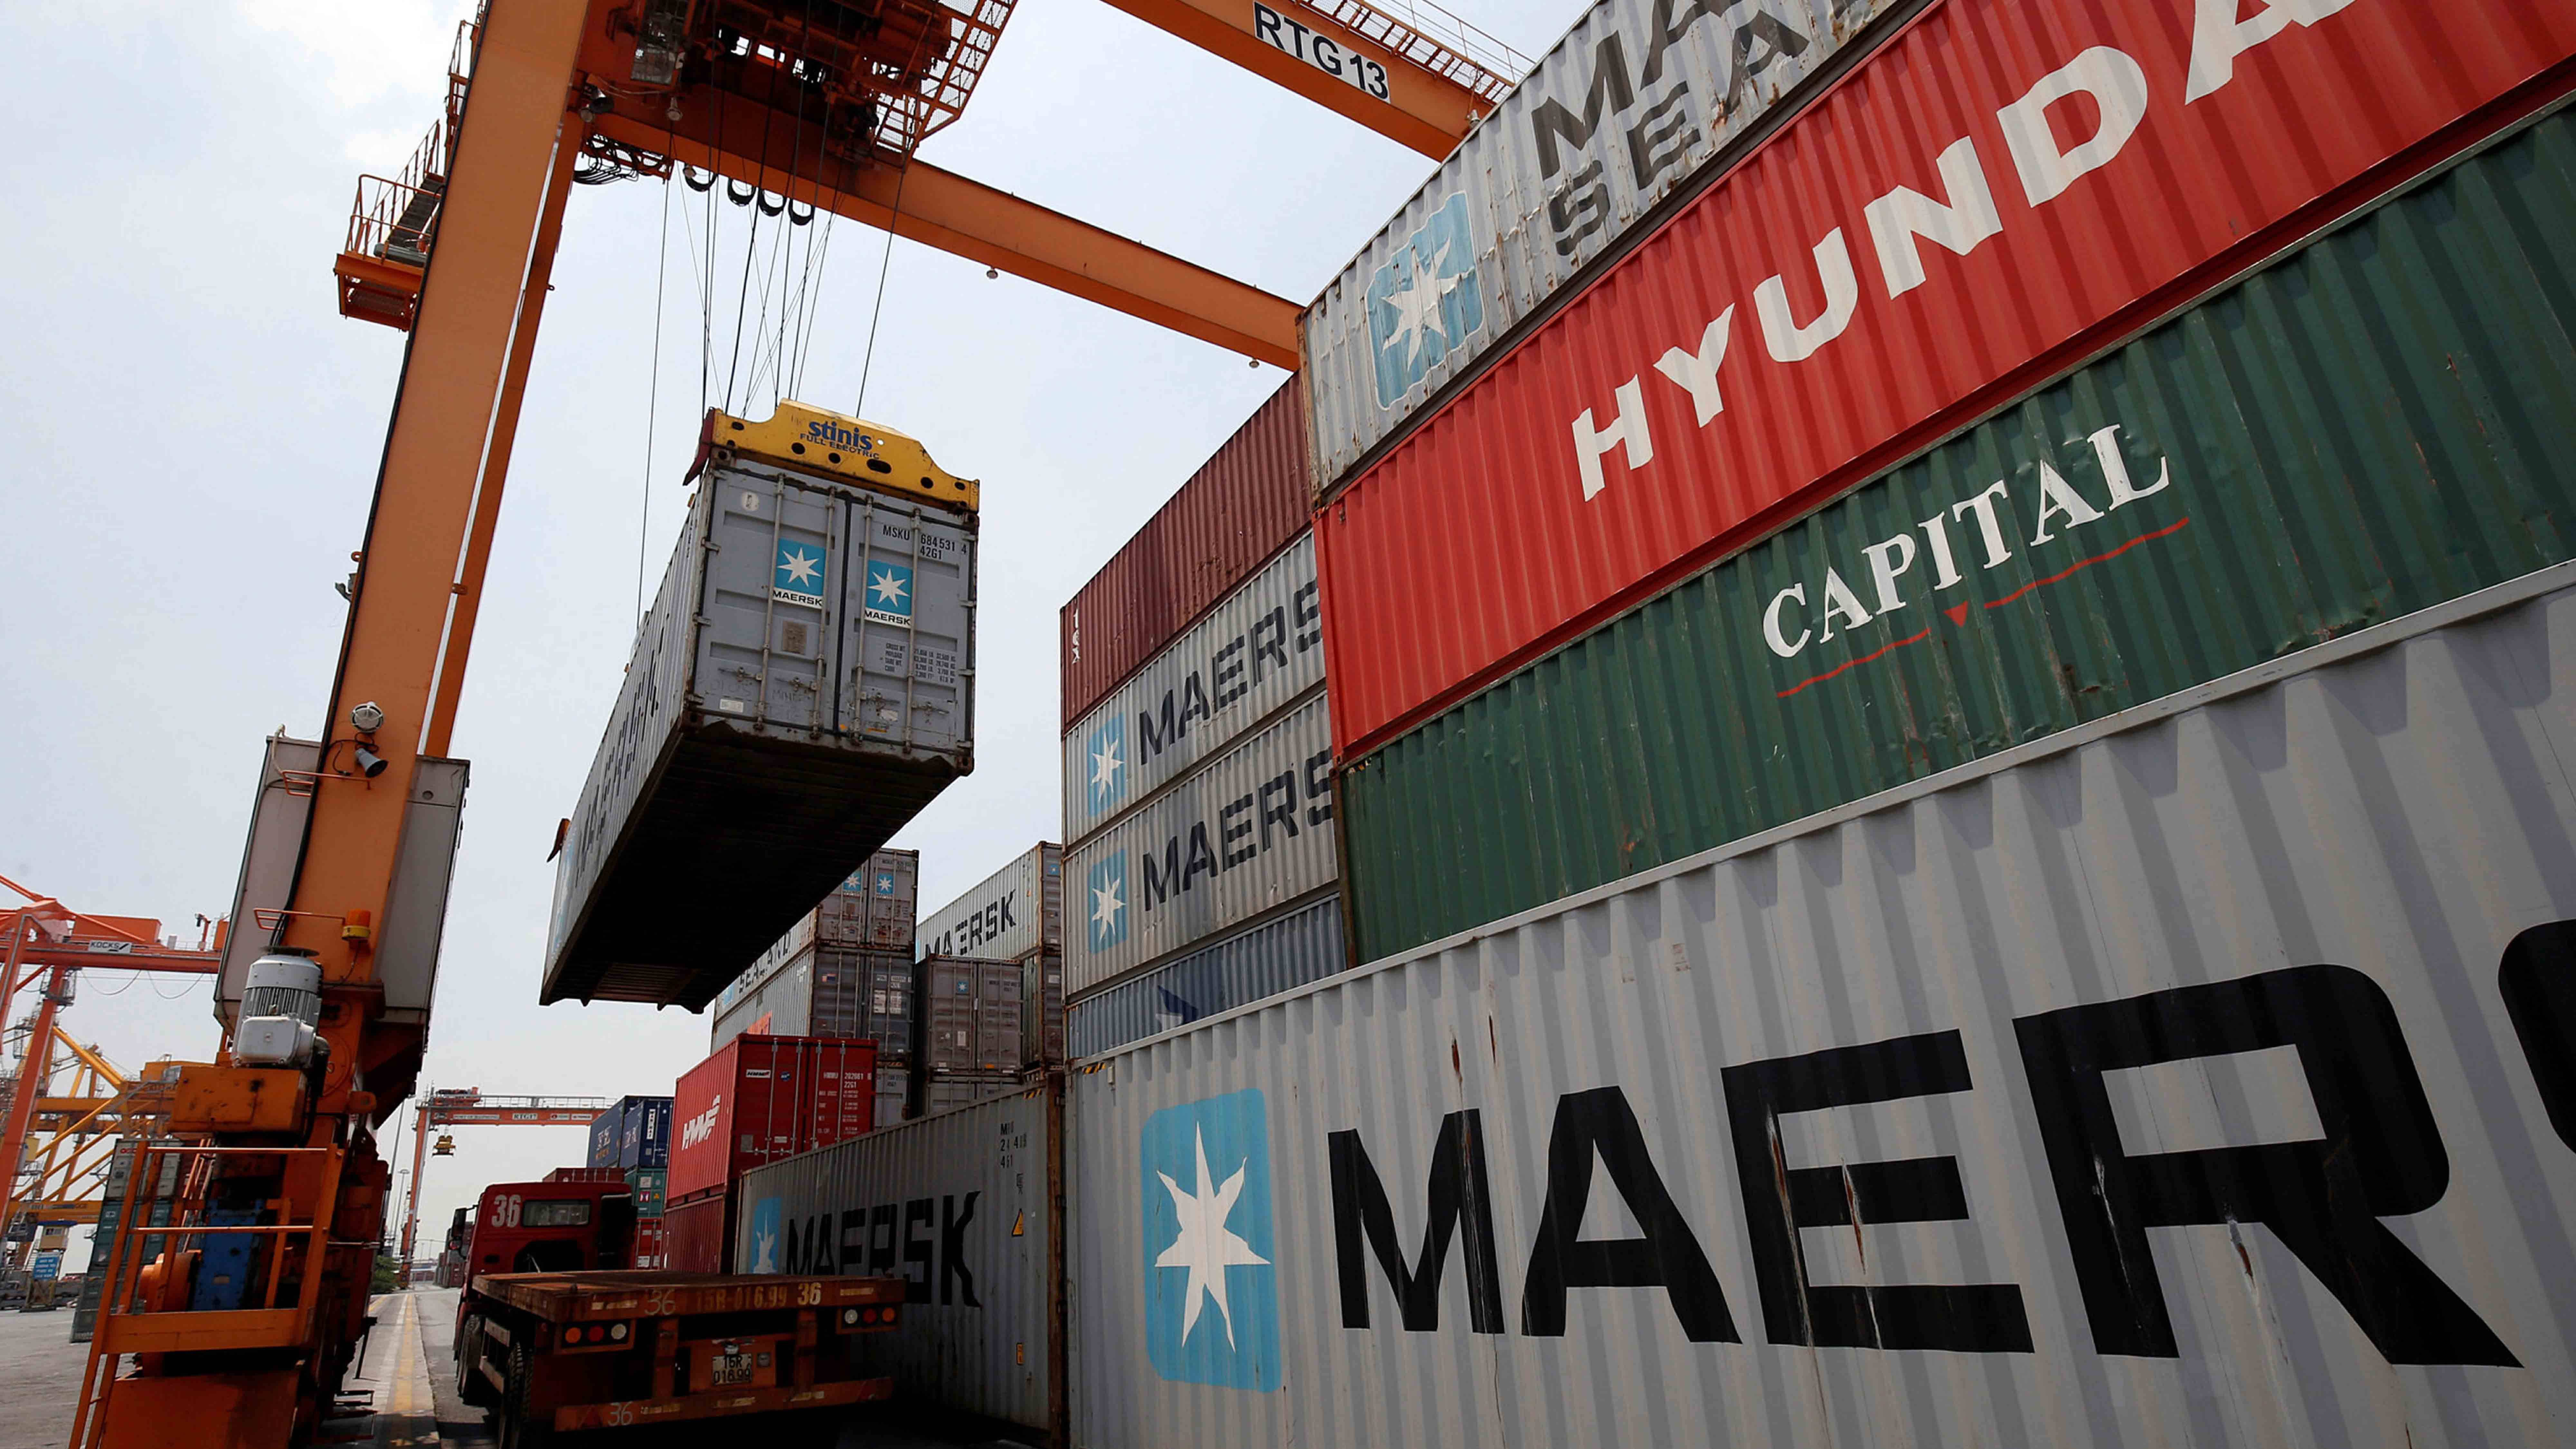 Vietnam values Chinese investment: official